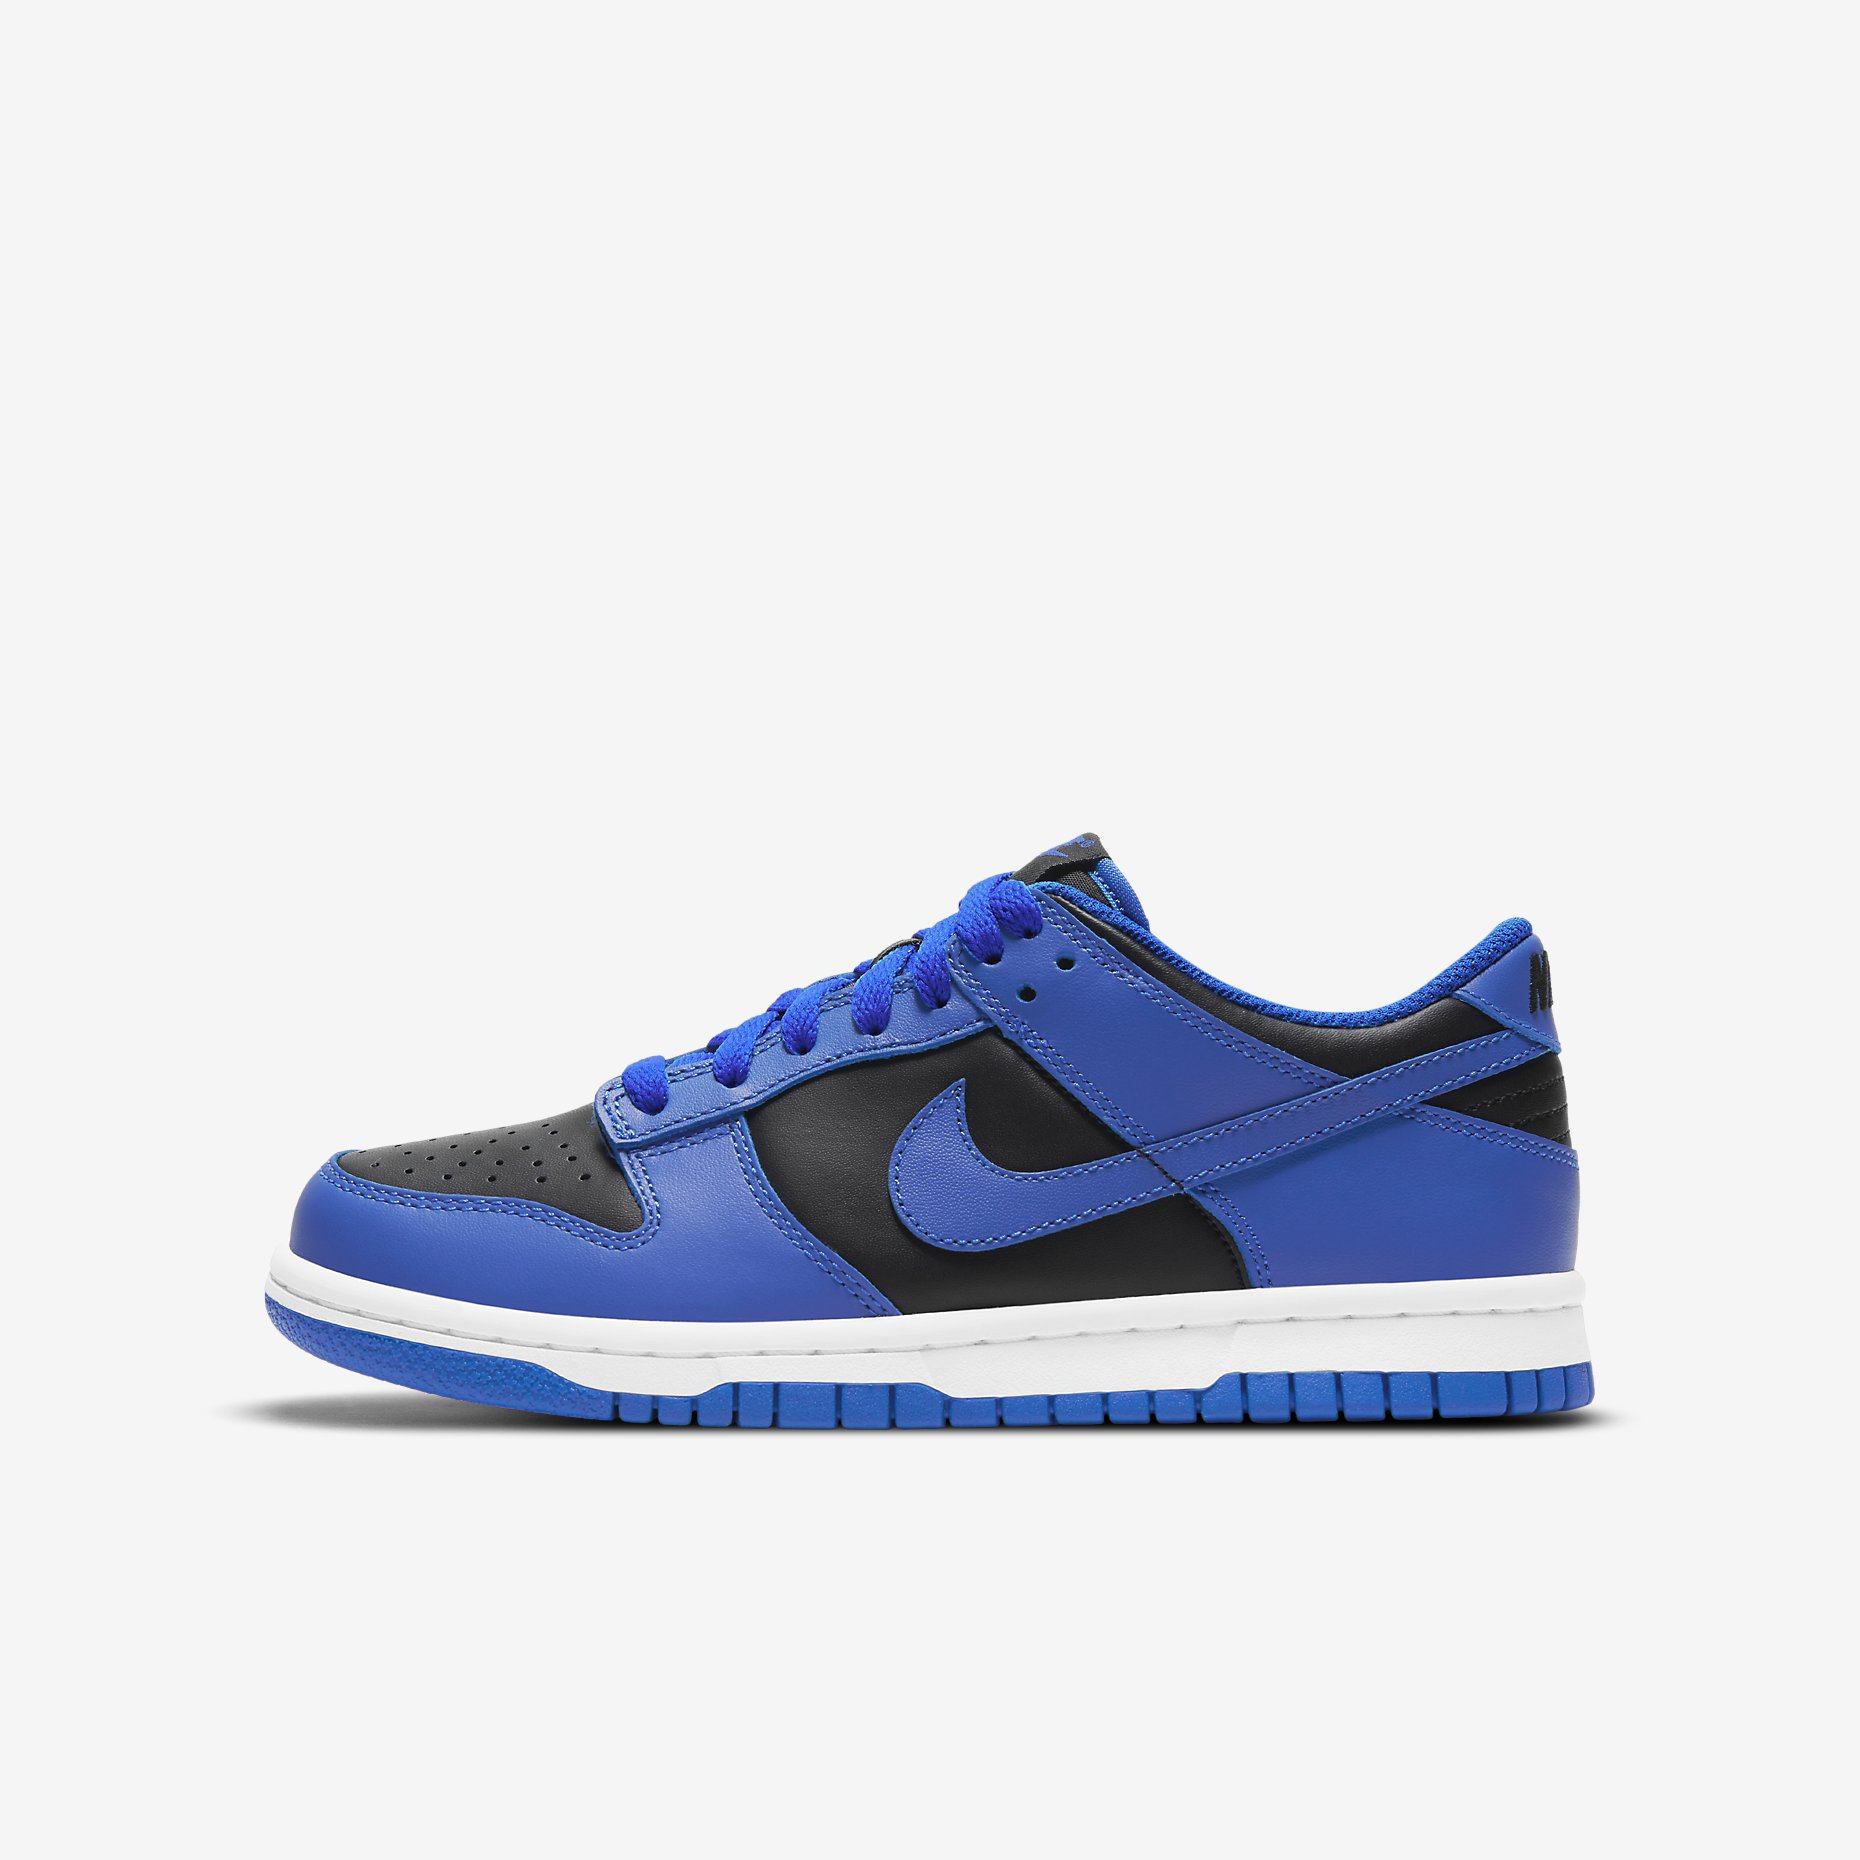 Nike Dunk Low GS 'Black Hyper Cobalt' 2021}